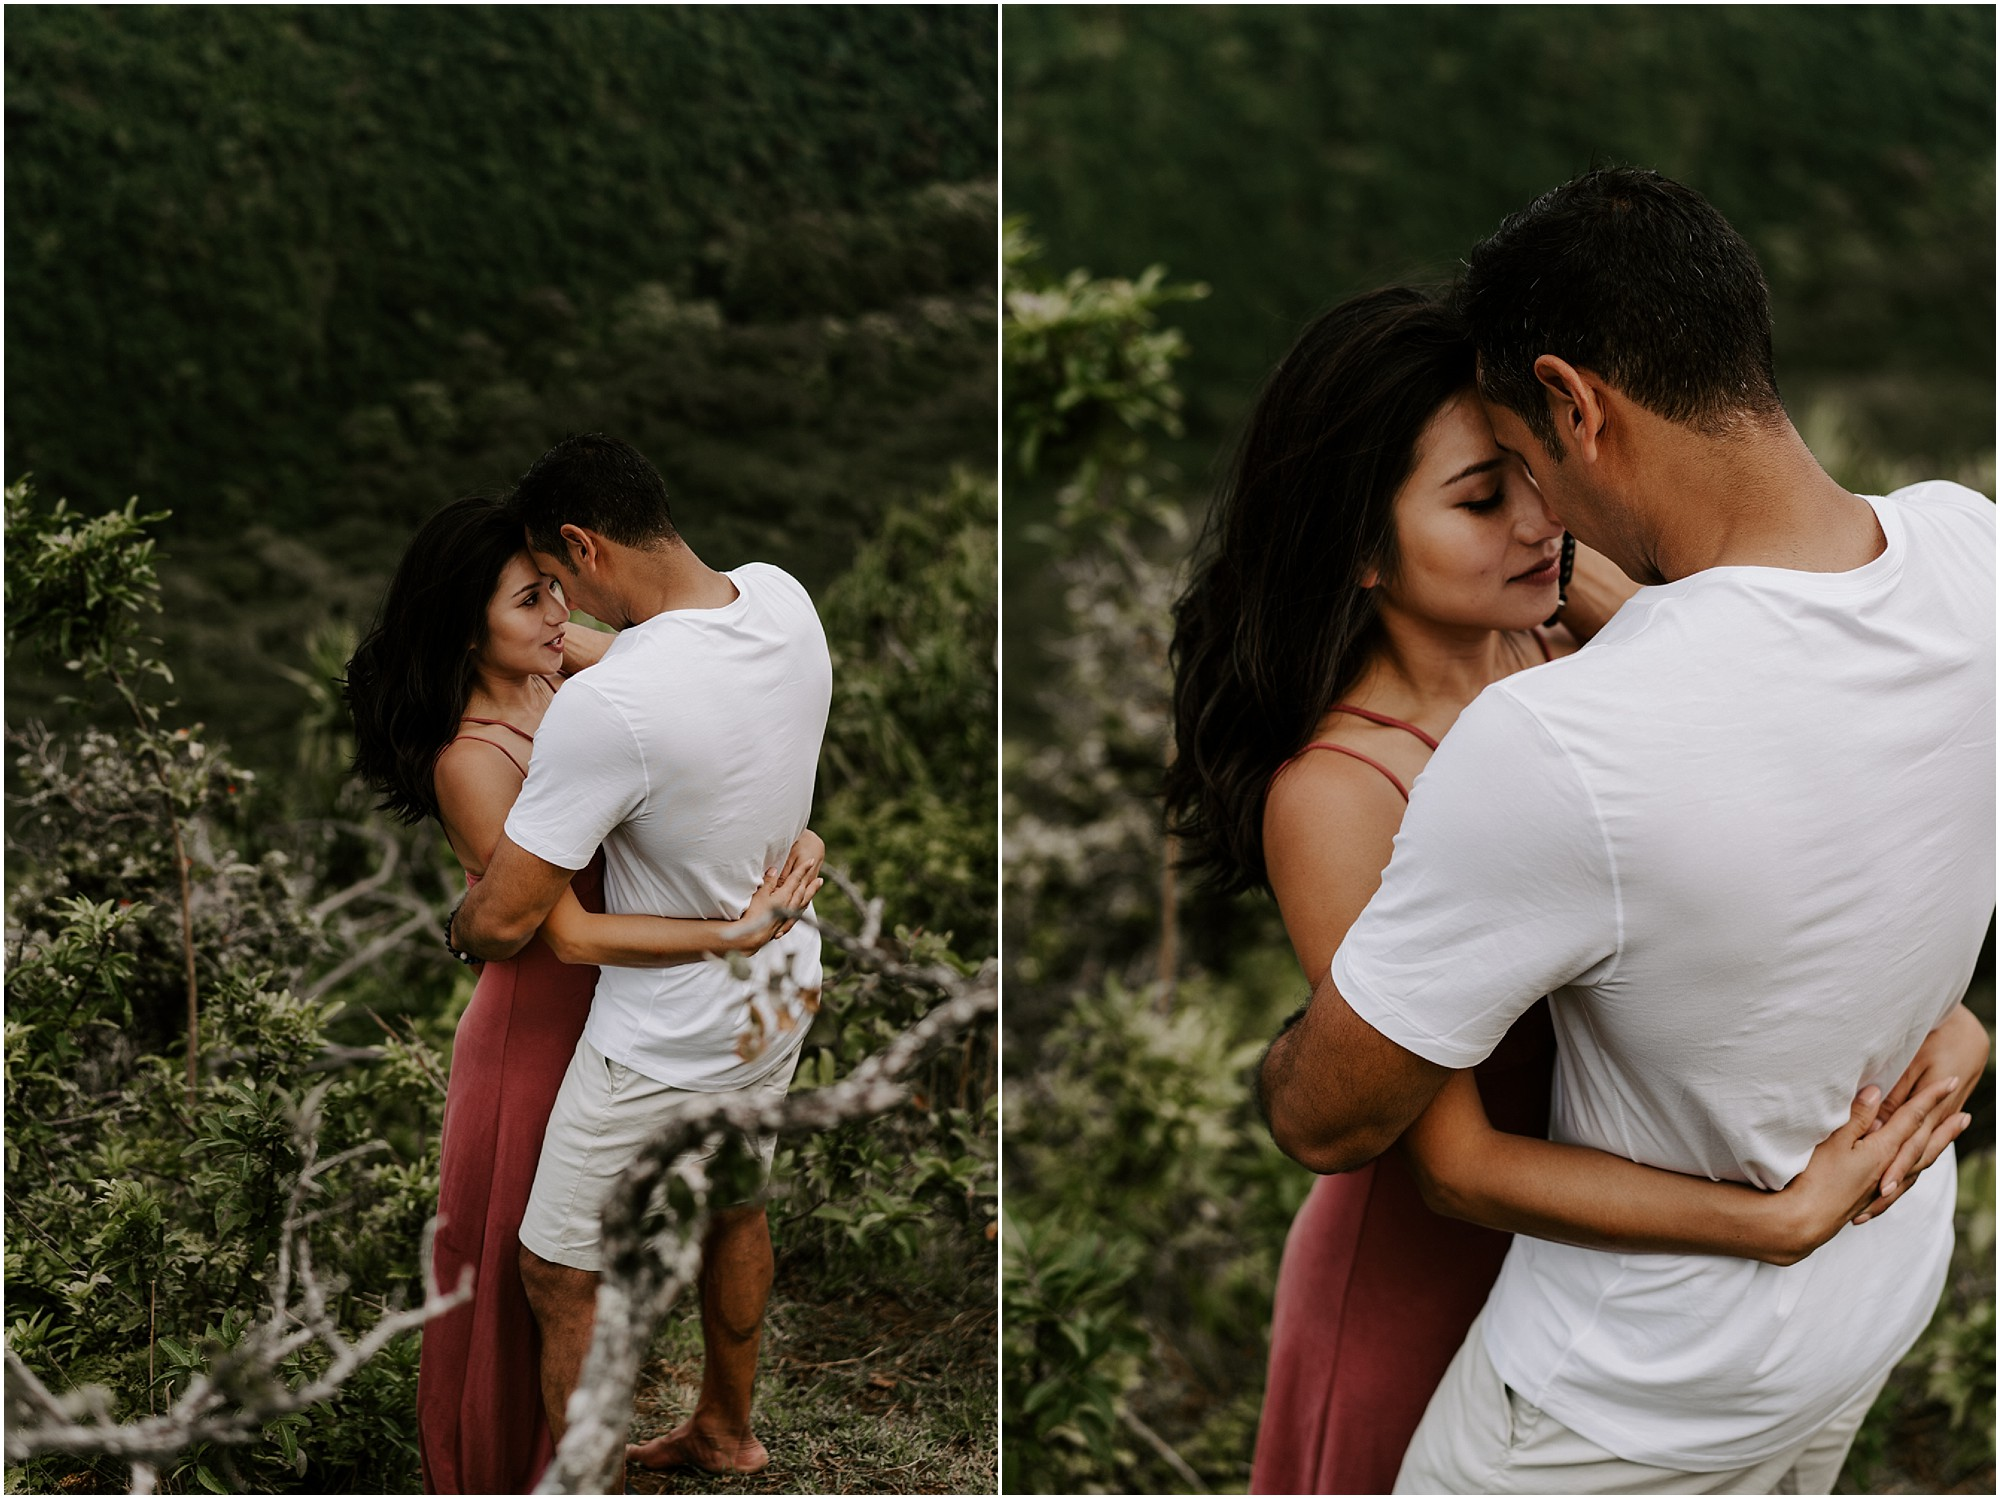 valley-engagement-session-big-island-elopement-photographer_0026.jpg